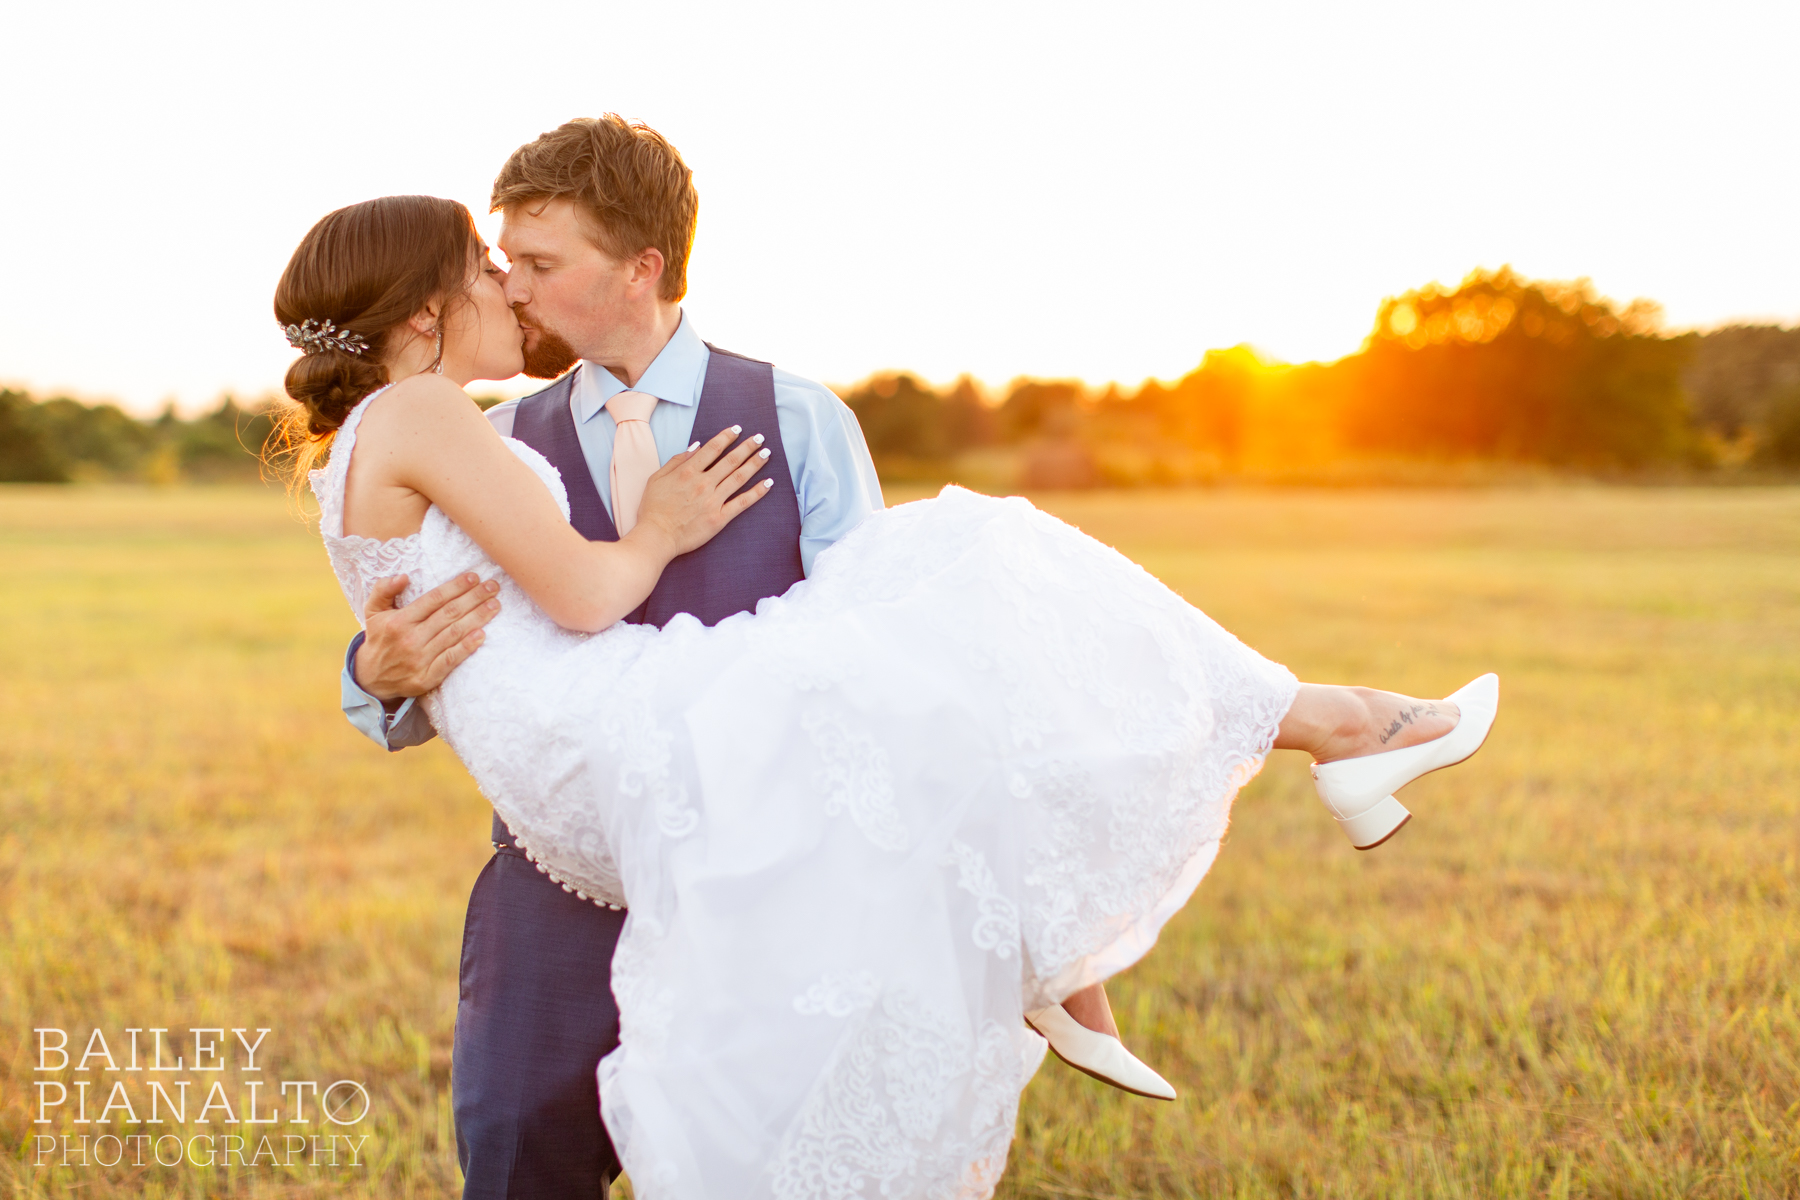 Peach & navy summer sunset wedding inspiration with a vintage 1975 Corvette convertible, Azazie and Men's Wearhouse in Hutchinson, Kansas